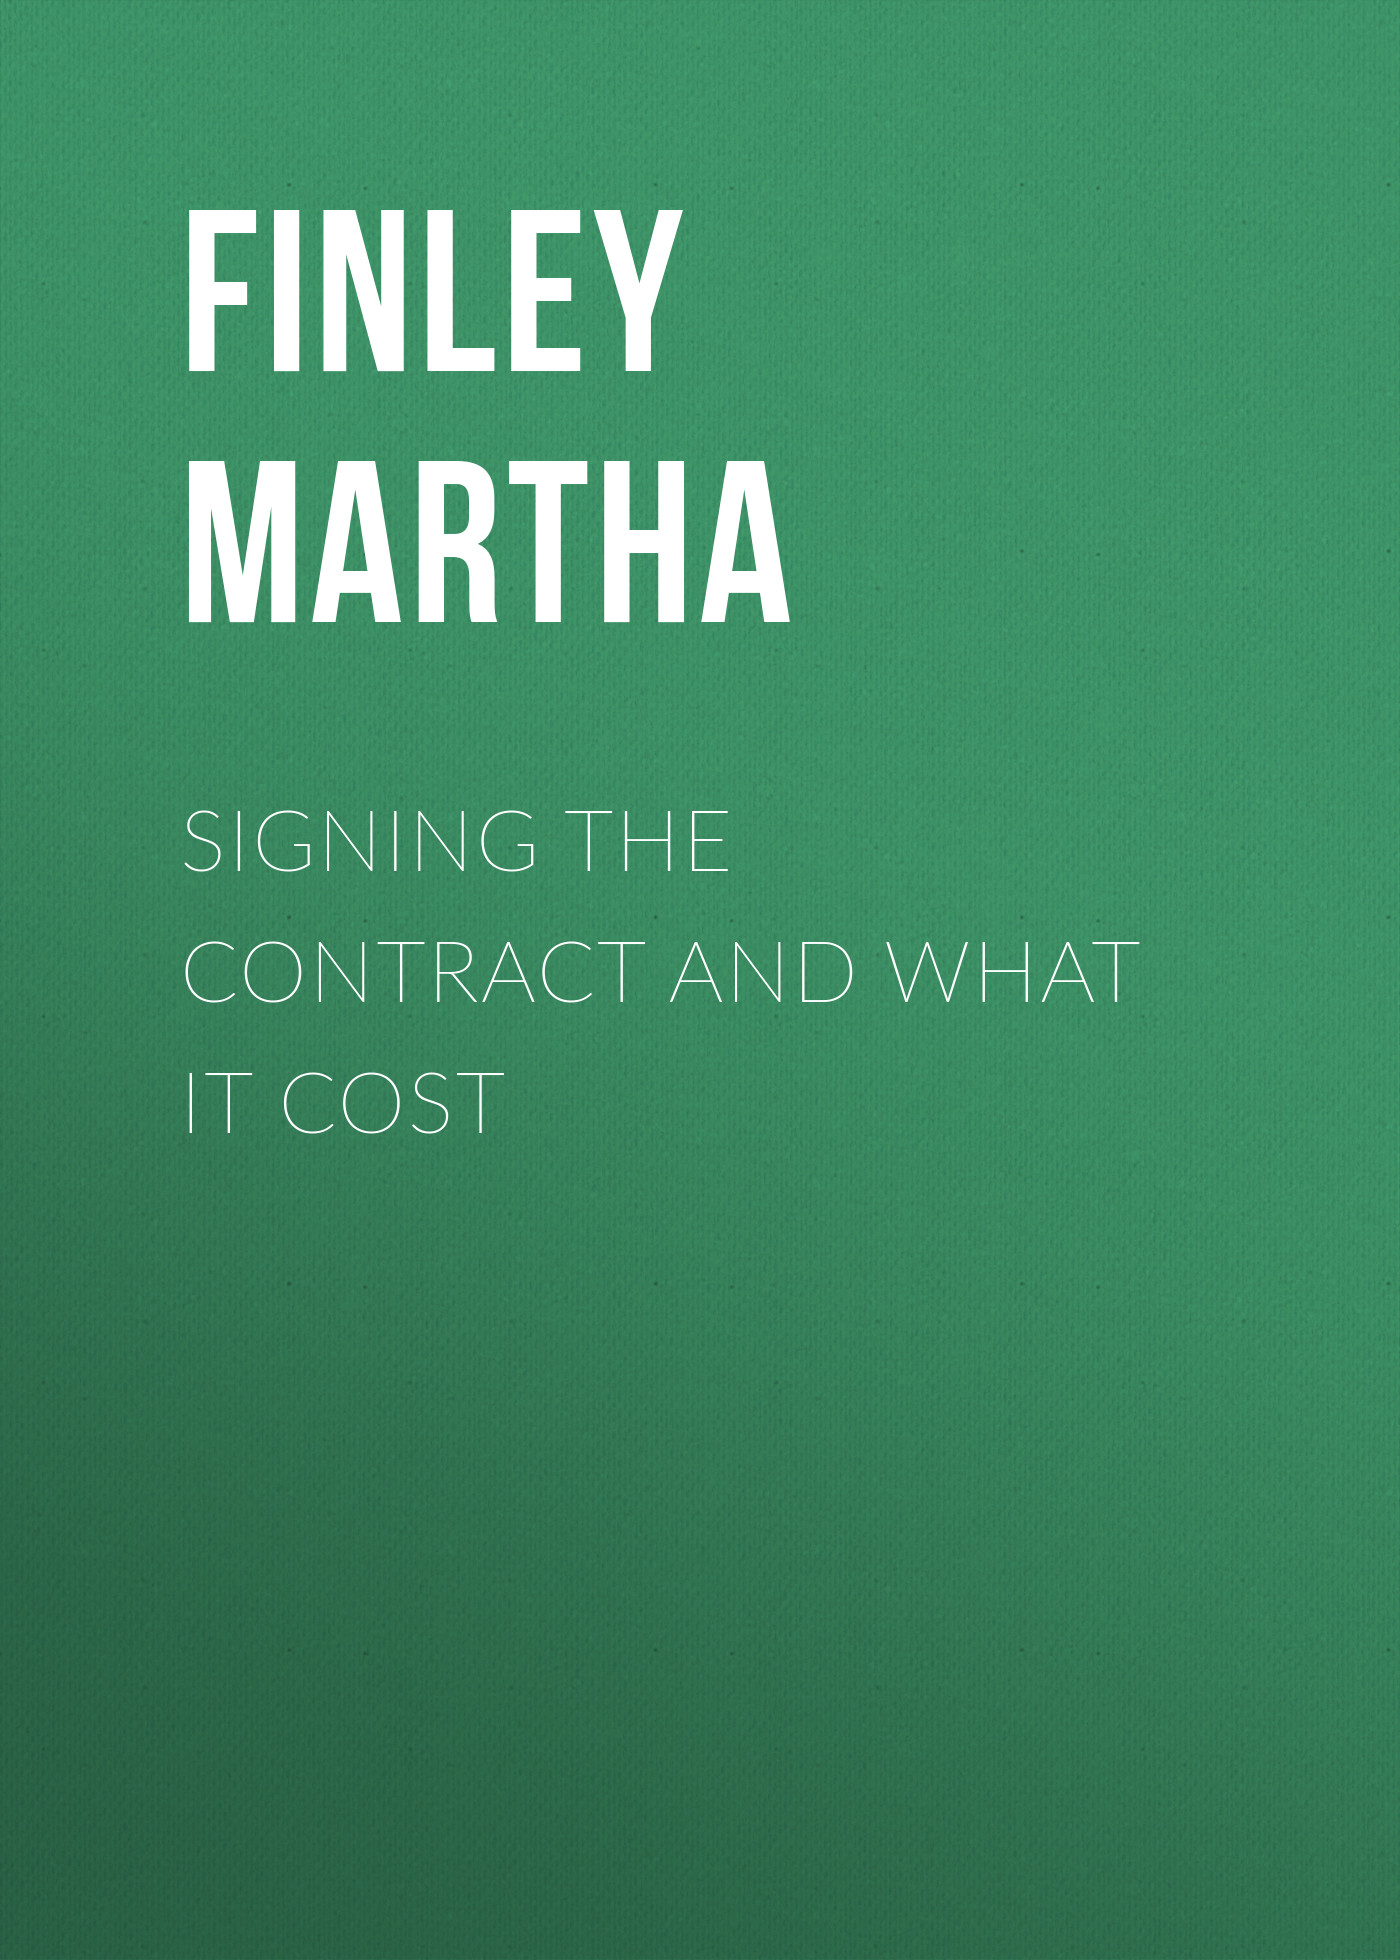 Finley Martha Signing the Contract and What it Cost freight cost controlling